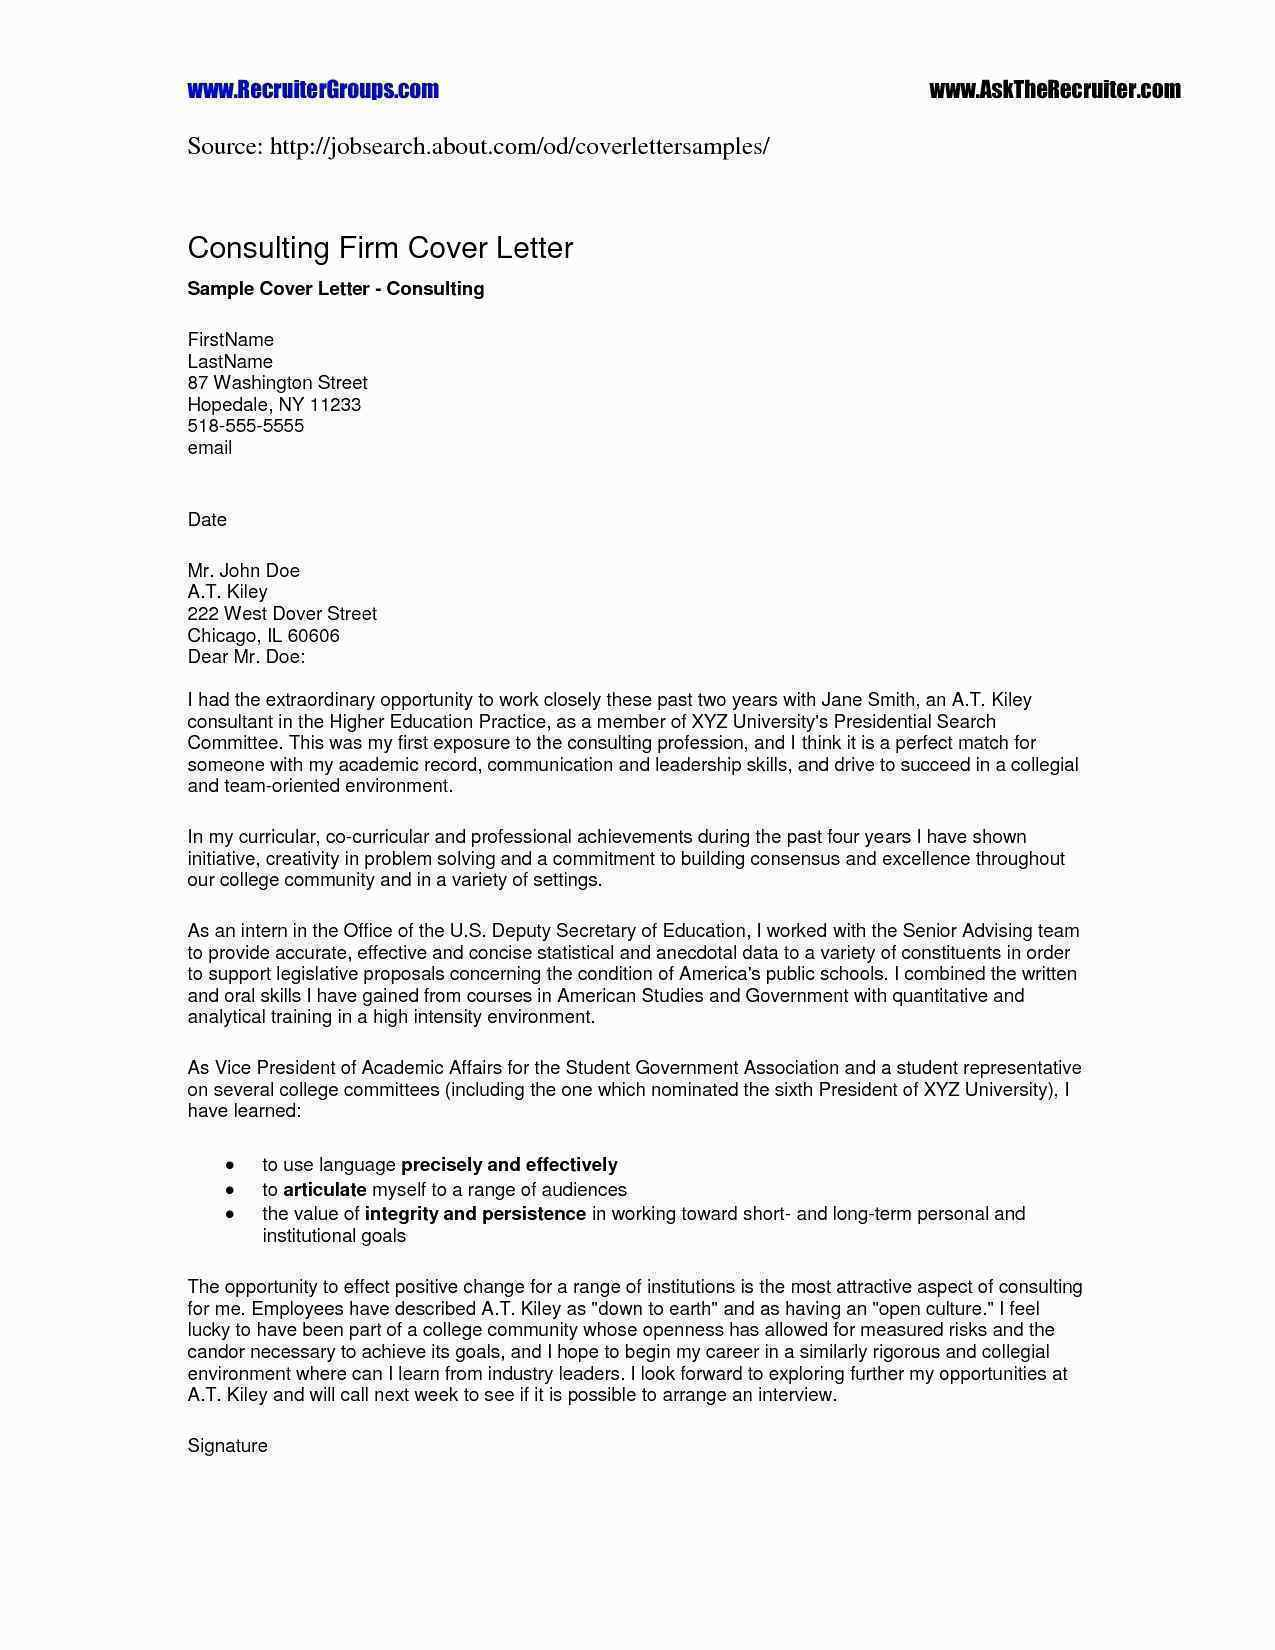 Ross School Of Business Resume Template - Cover Letter for Mba Admission Sample Luxury College Admission